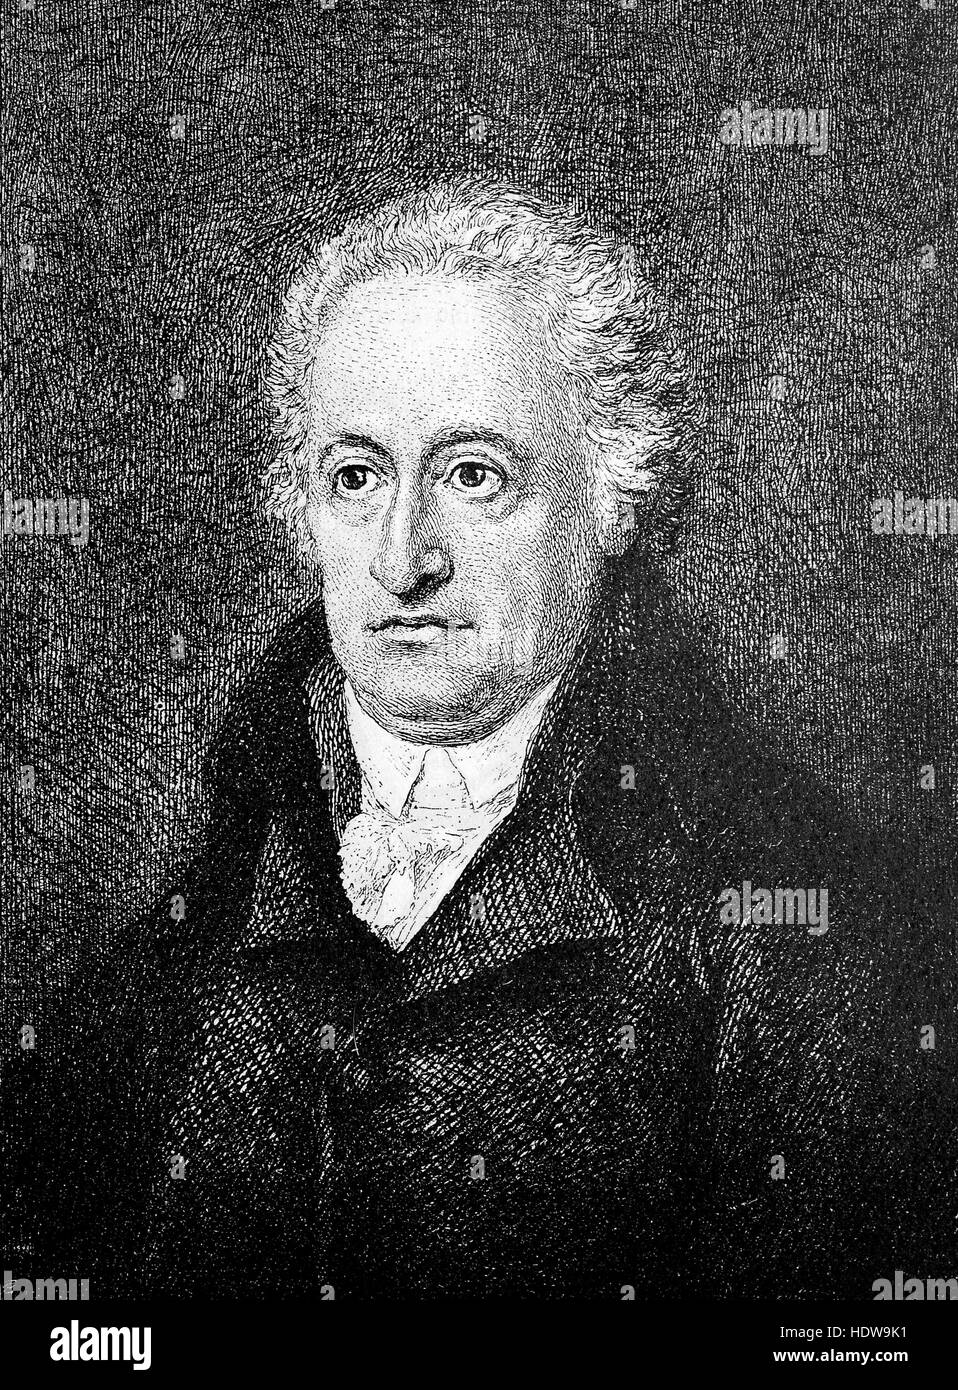 Johann Wolfgang von Goethe 57 years old, 1749-1832, a German writer and statesman, woodcut from the year 1880 - Stock Image